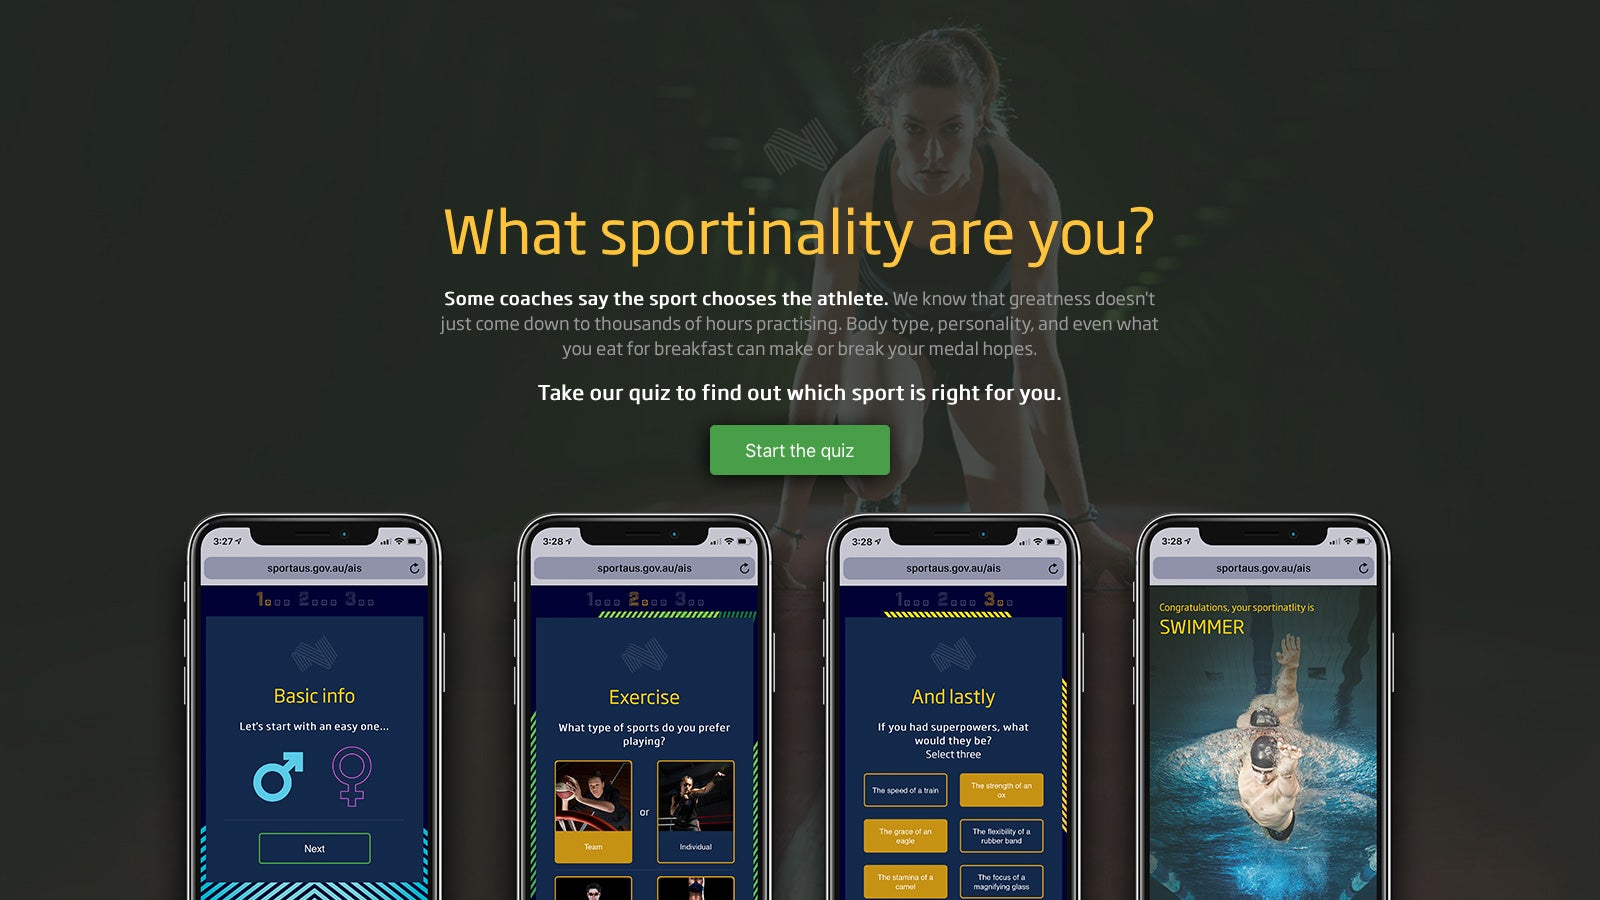 Australian Institute of Sport   'What sportinality are you?' quiz on mobile   Devotion